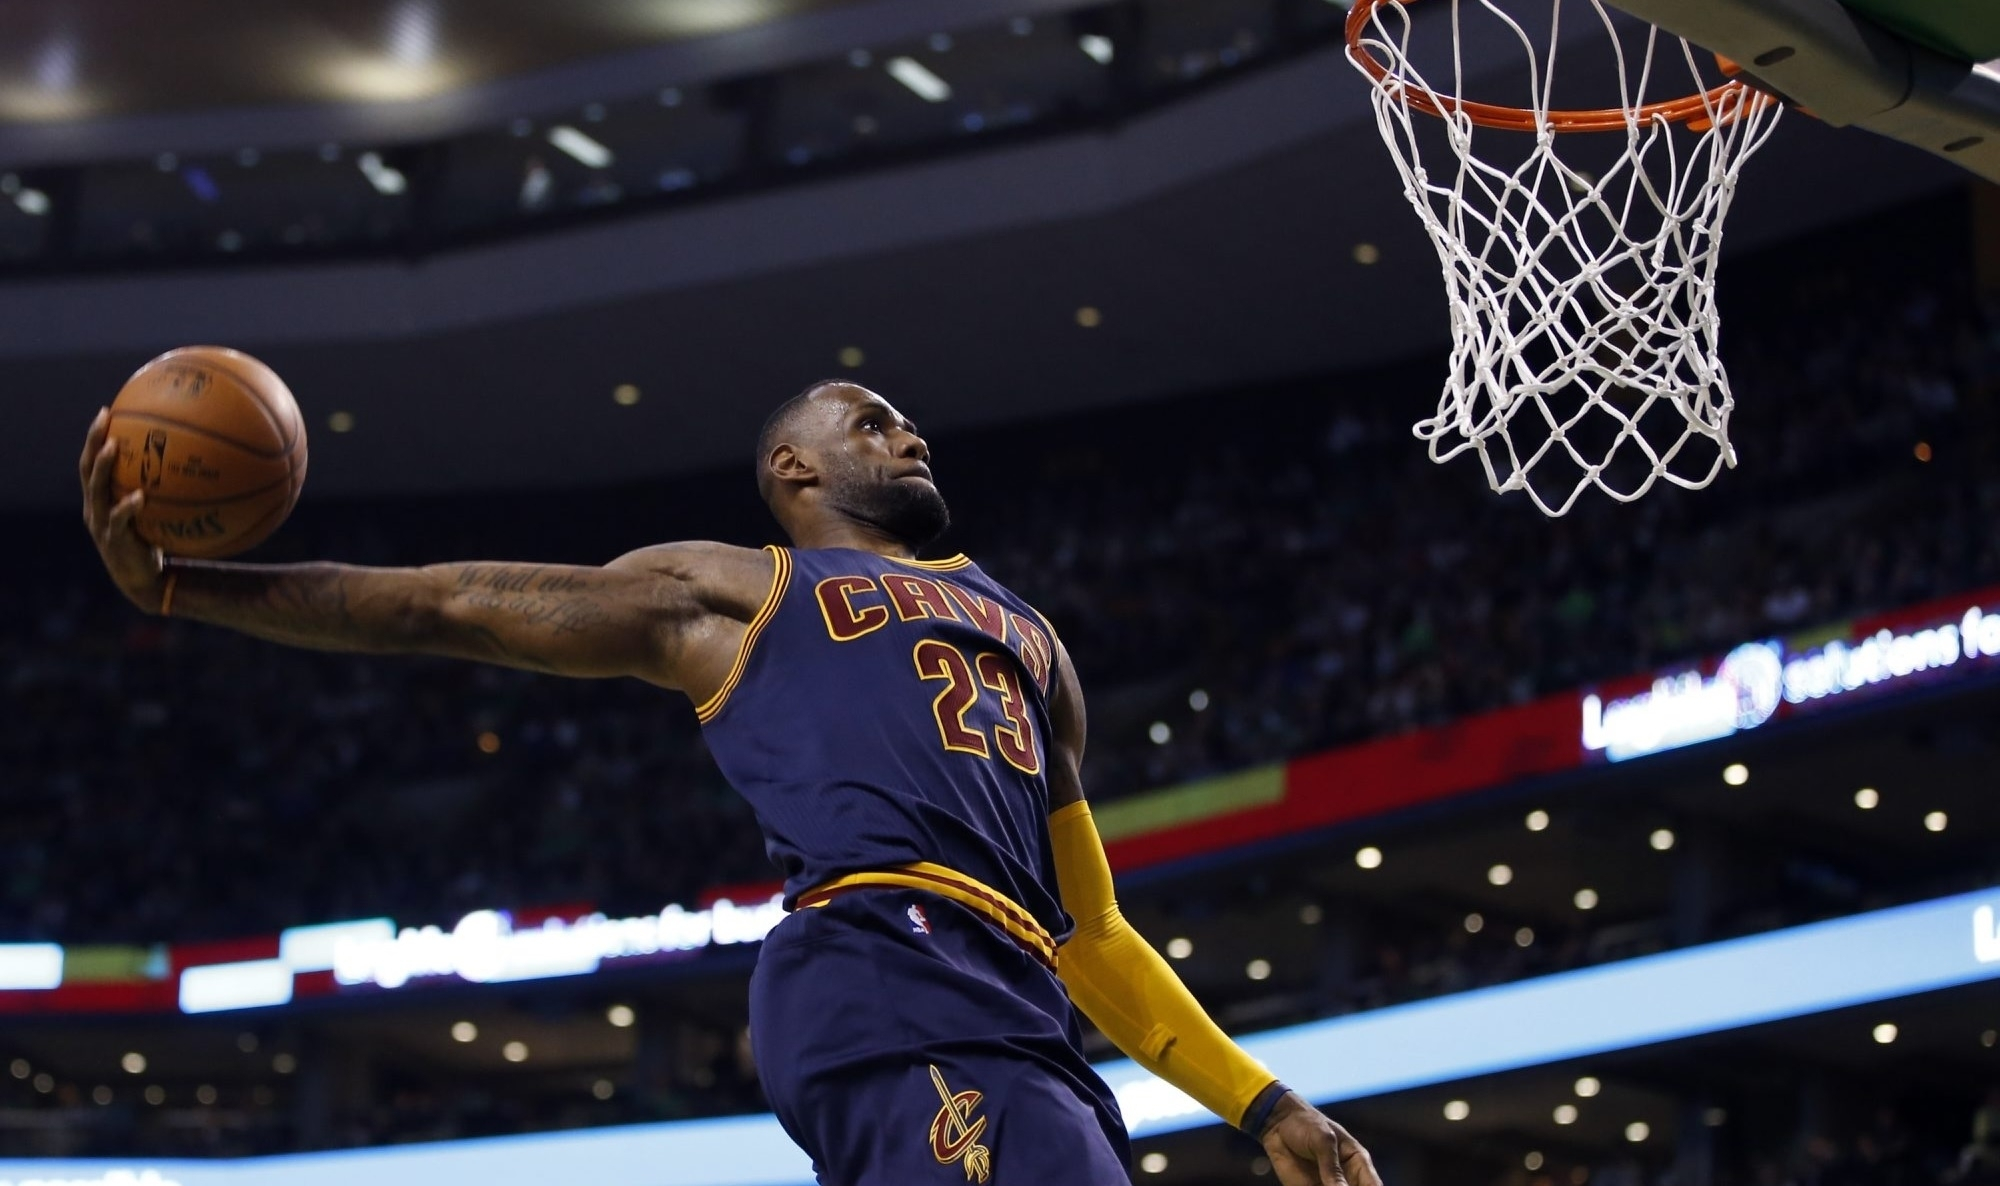 in his 14th season, lebron james sets career-high for total dunks